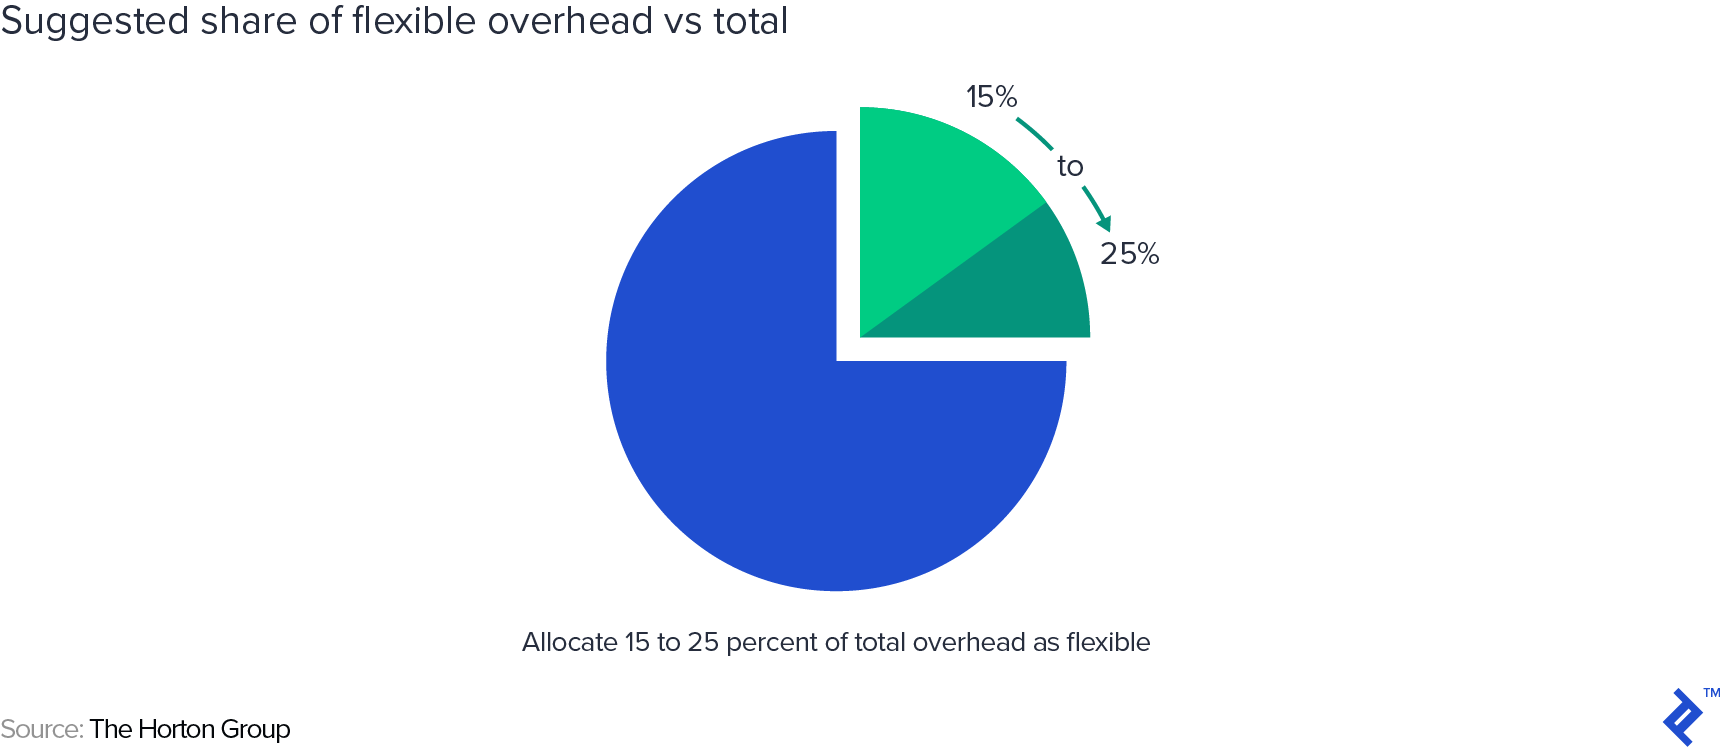 Suggested share of flexible overhead vs. total